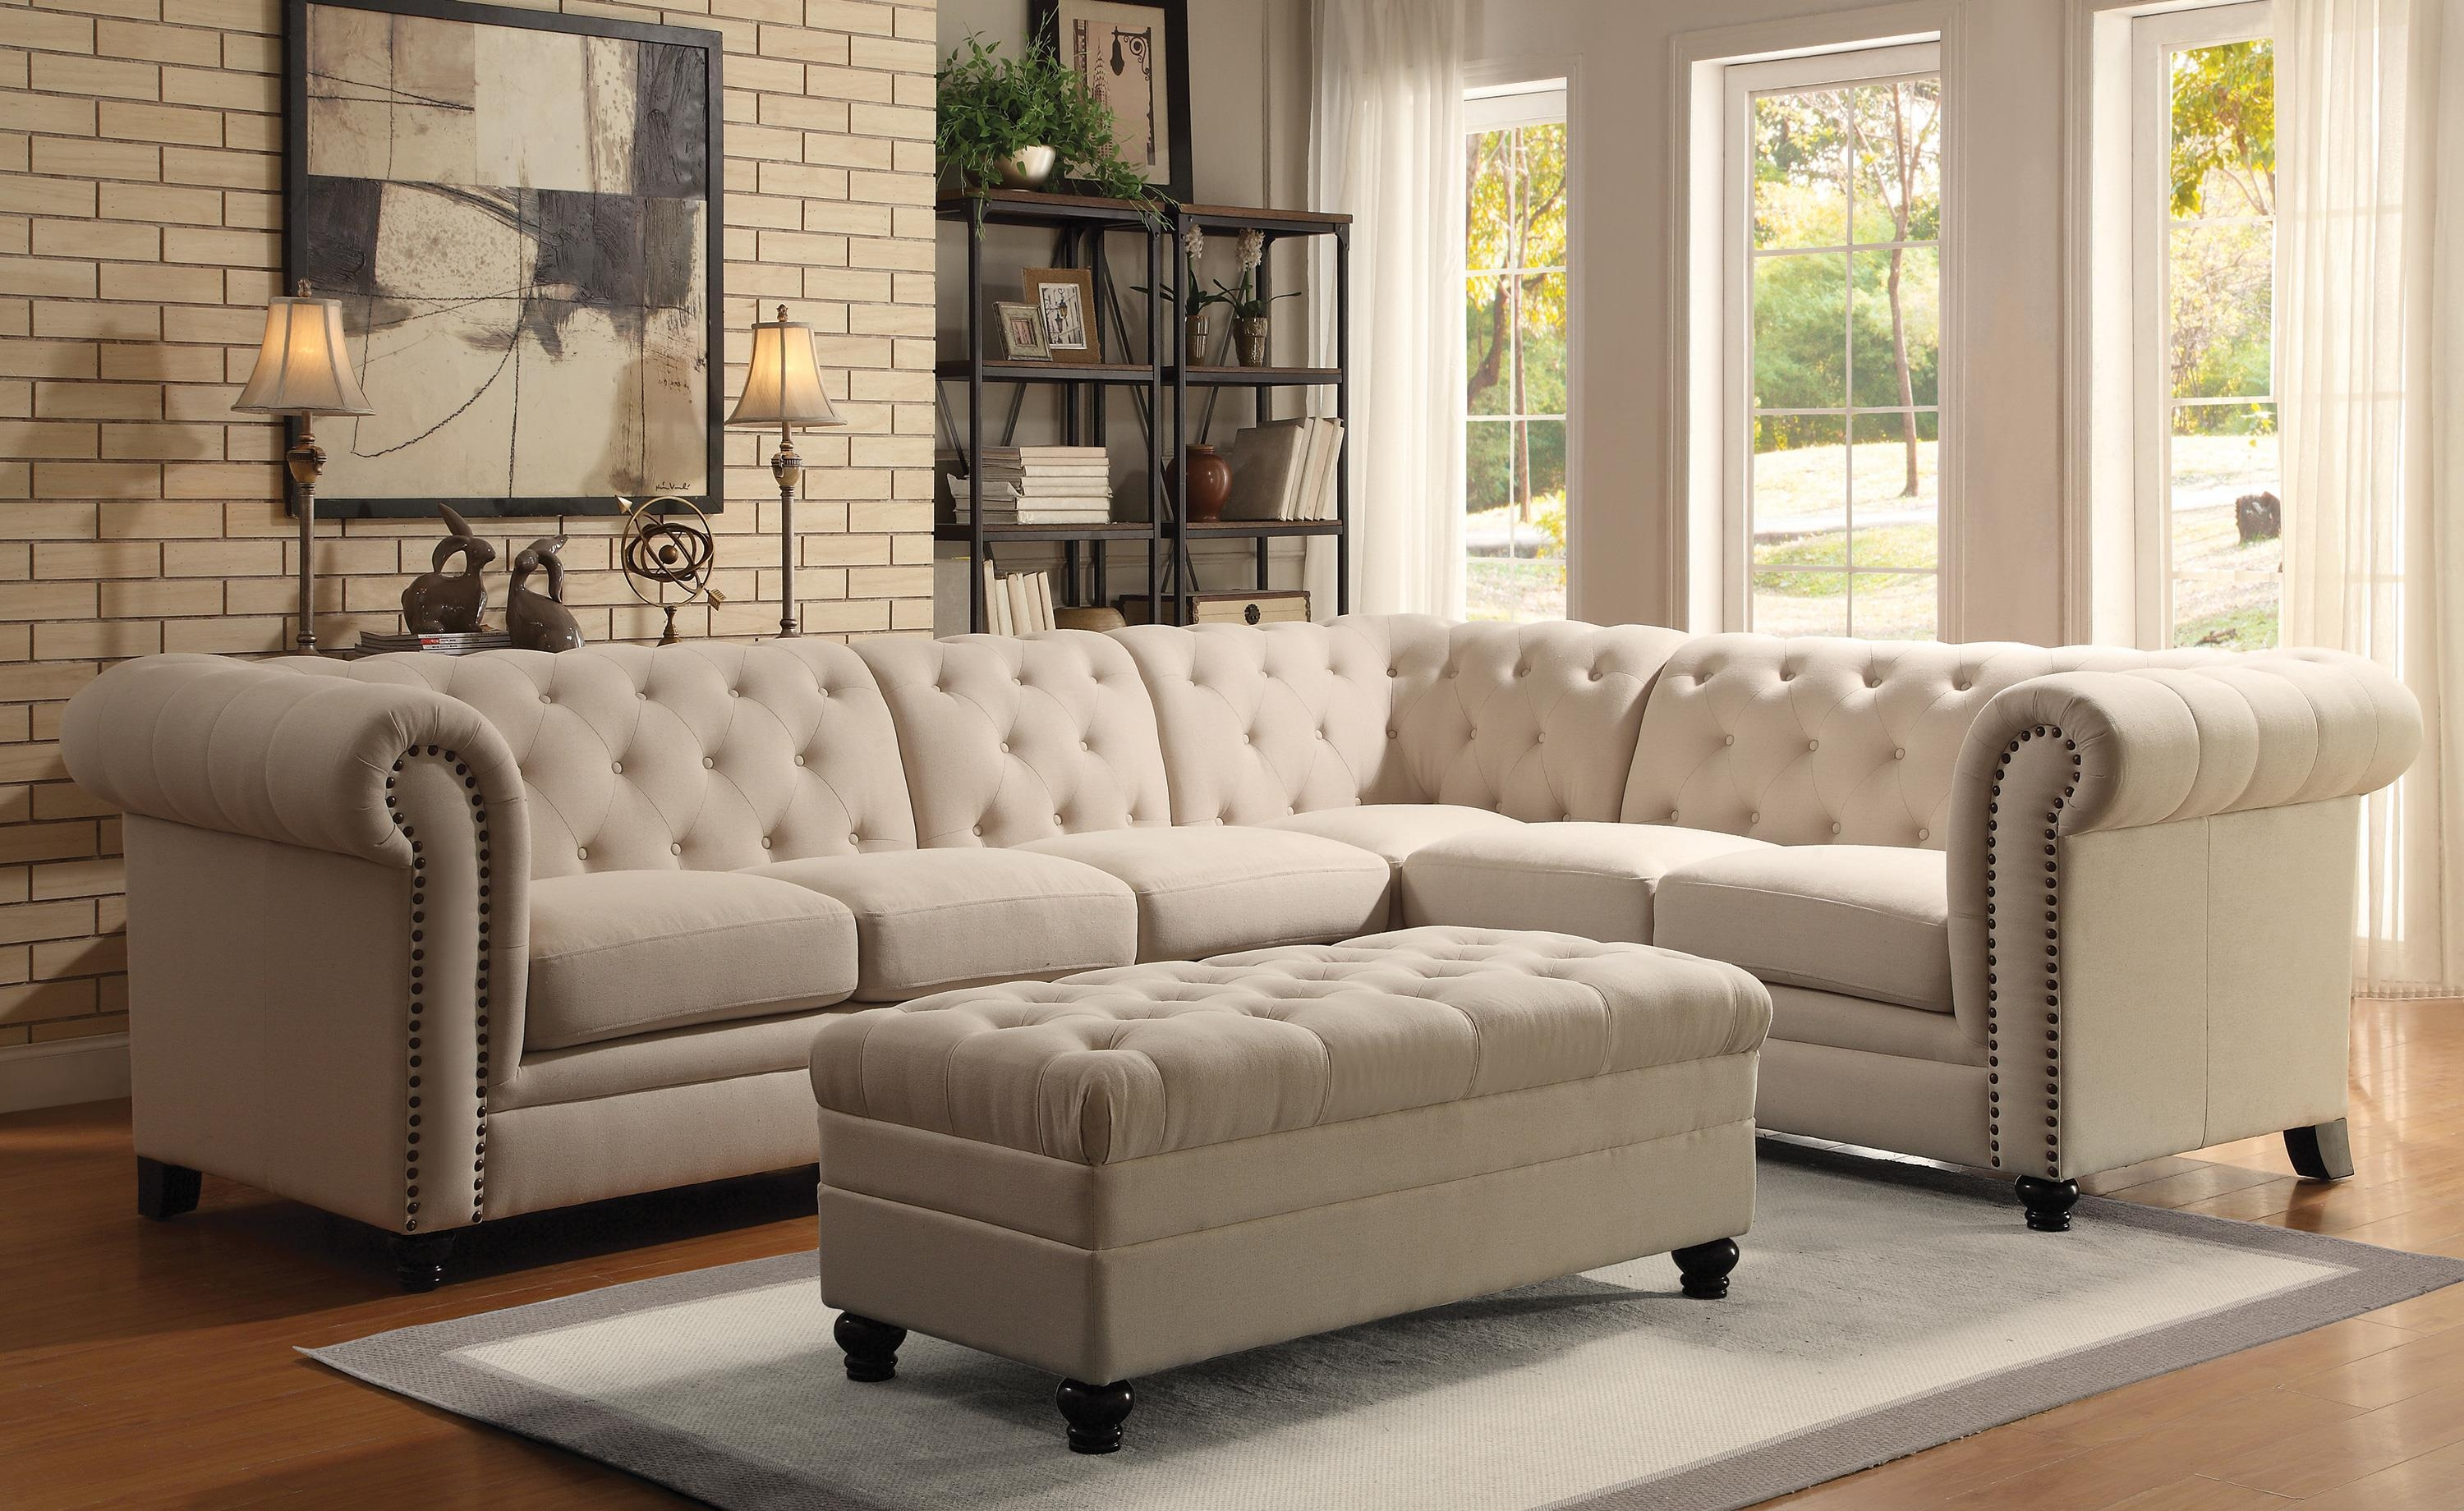 Sofa: Sectional Sleeper | Tufted Sectional Sofa | Tufted Sectional Within Tufted Sectional Sofa Chaise (Image 14 of 20)